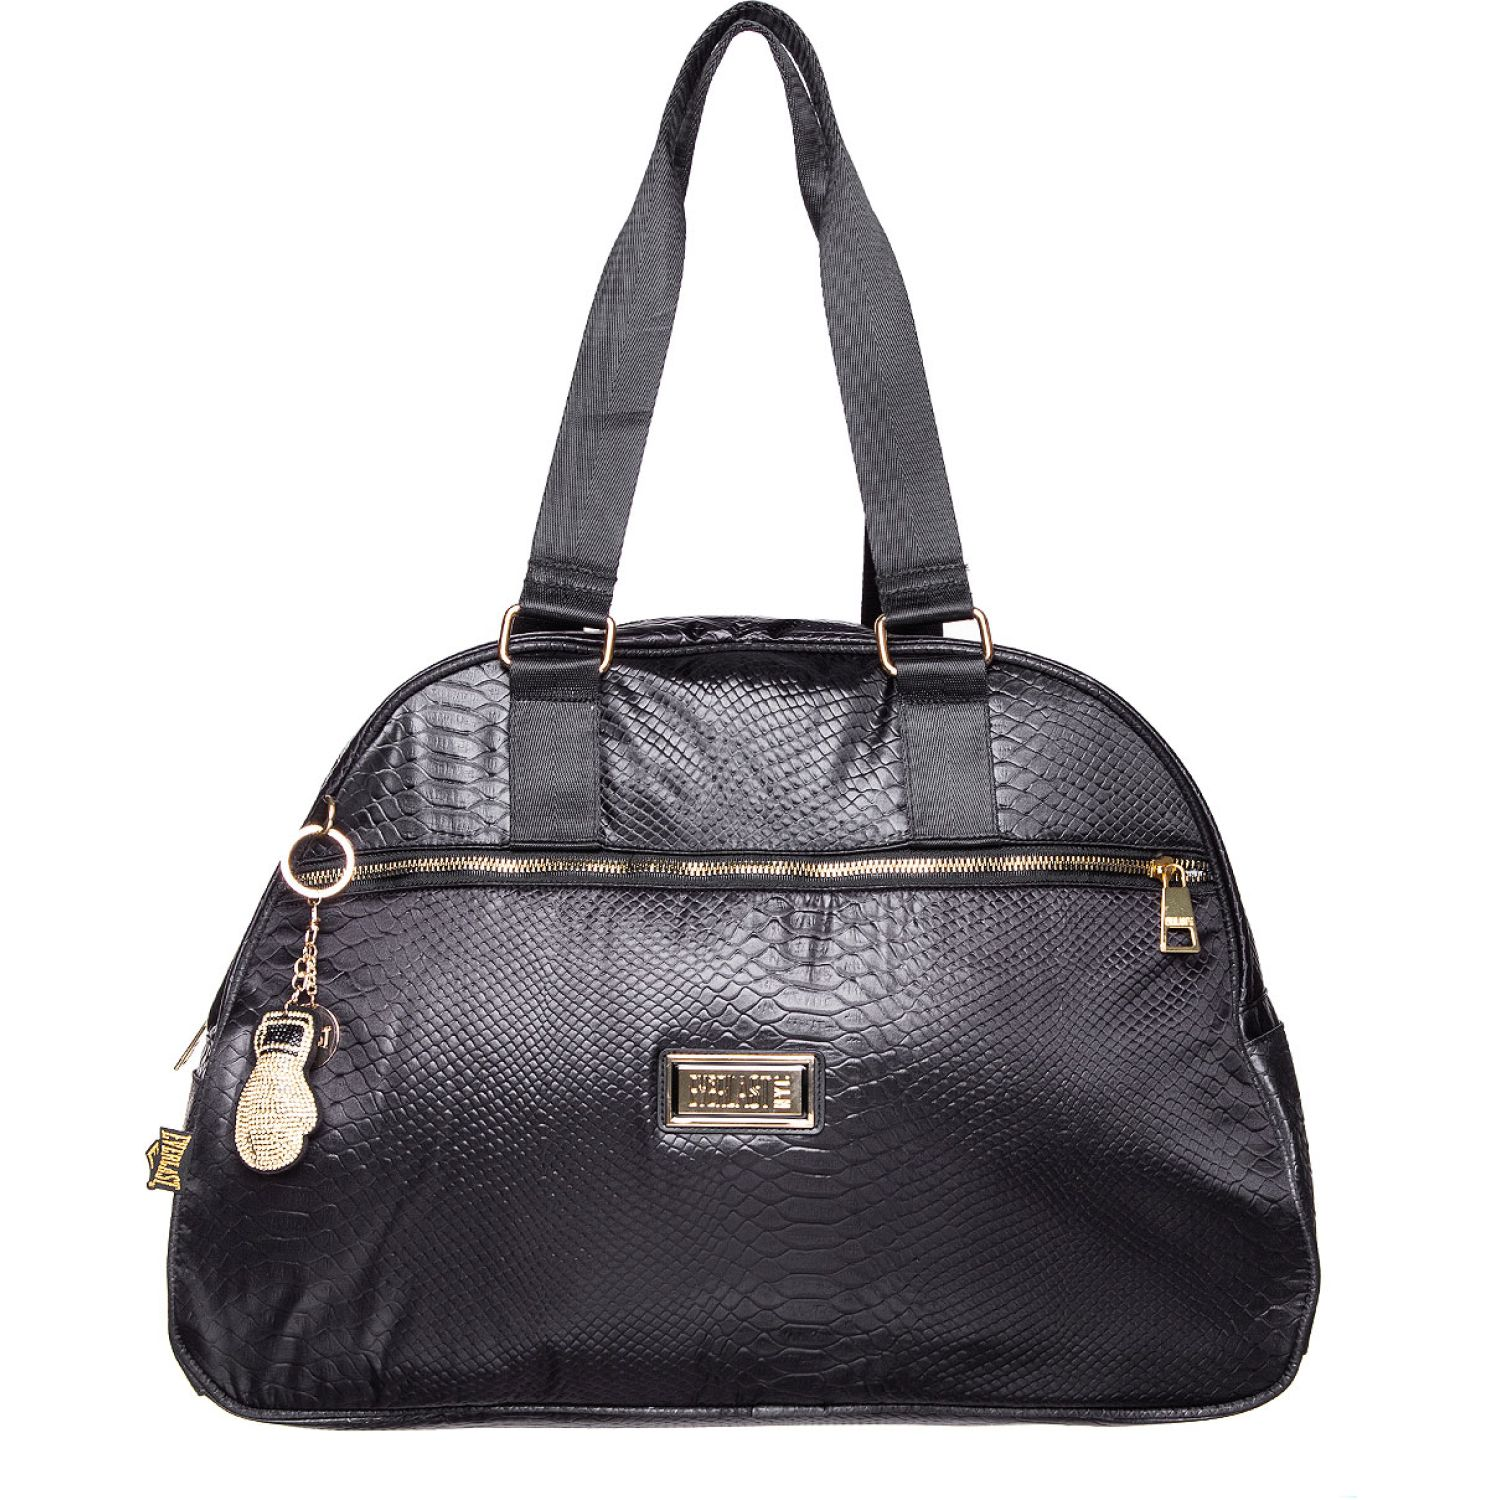 Everlast bolso weekend piton Negro Totes